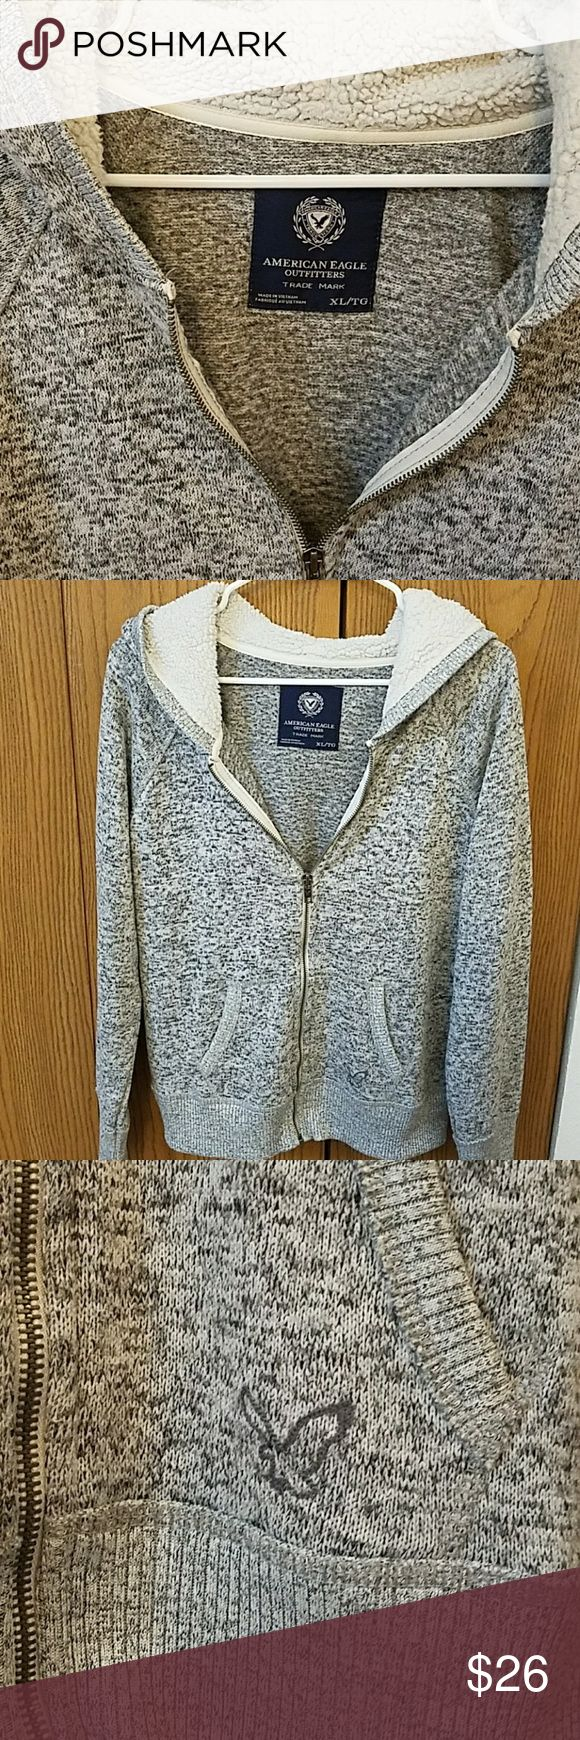 American Eagle zip up hoodie American Eagle XL gray, black and white speckled zip up hoodie, no flaws. True to size, questions and offers welcome :) American Eagle Outfitters Tops Sweatshirts & Hoodies